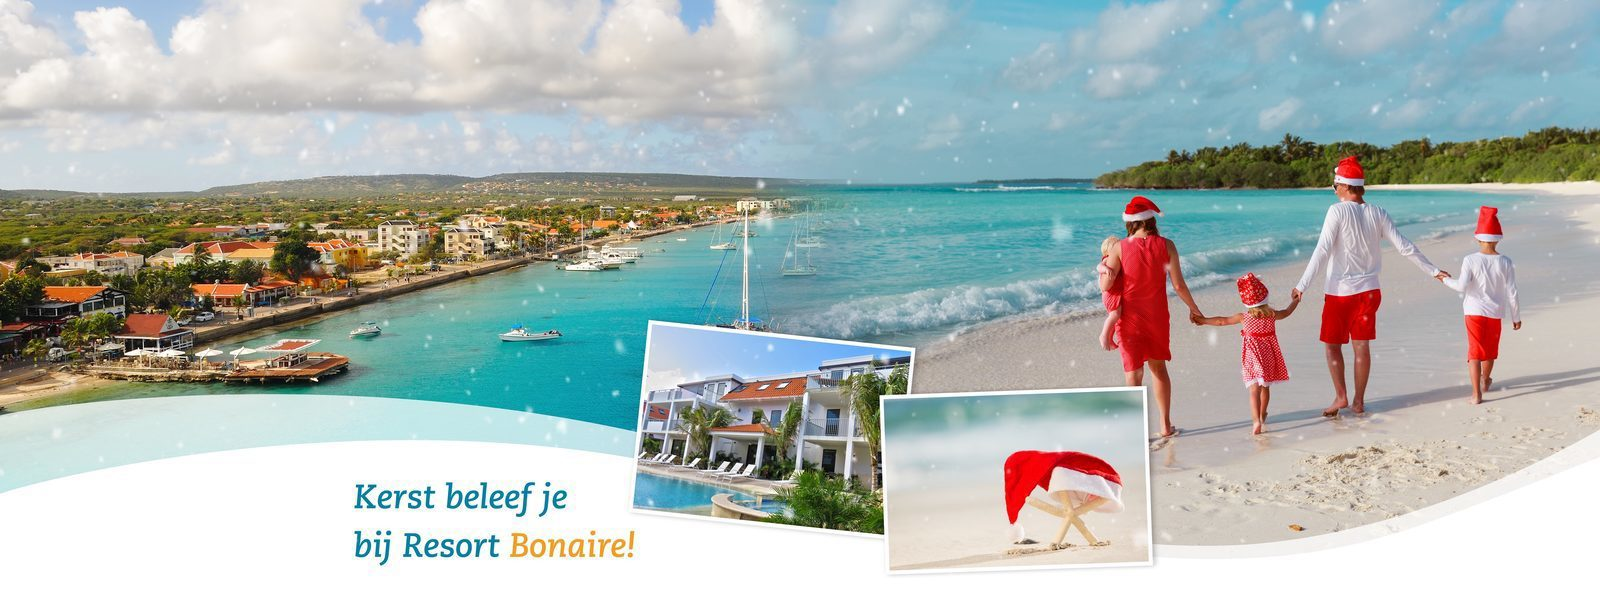 Christmas at Resort Bonaire